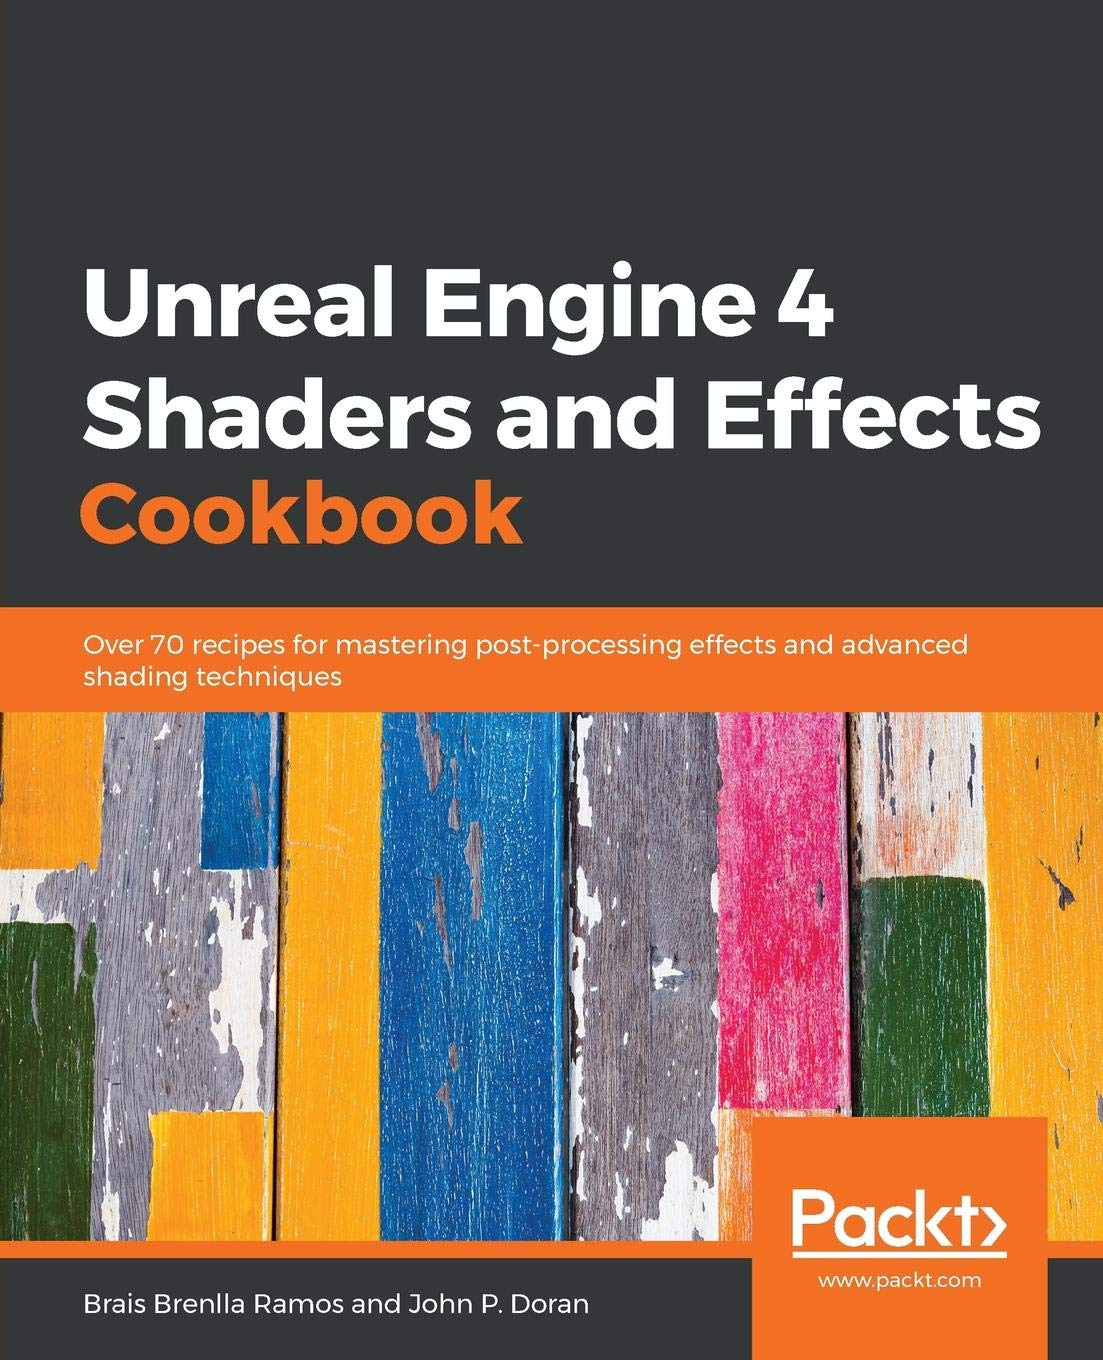 Amazon com: Unreal Engine 4 Shaders and Effects Cookbook